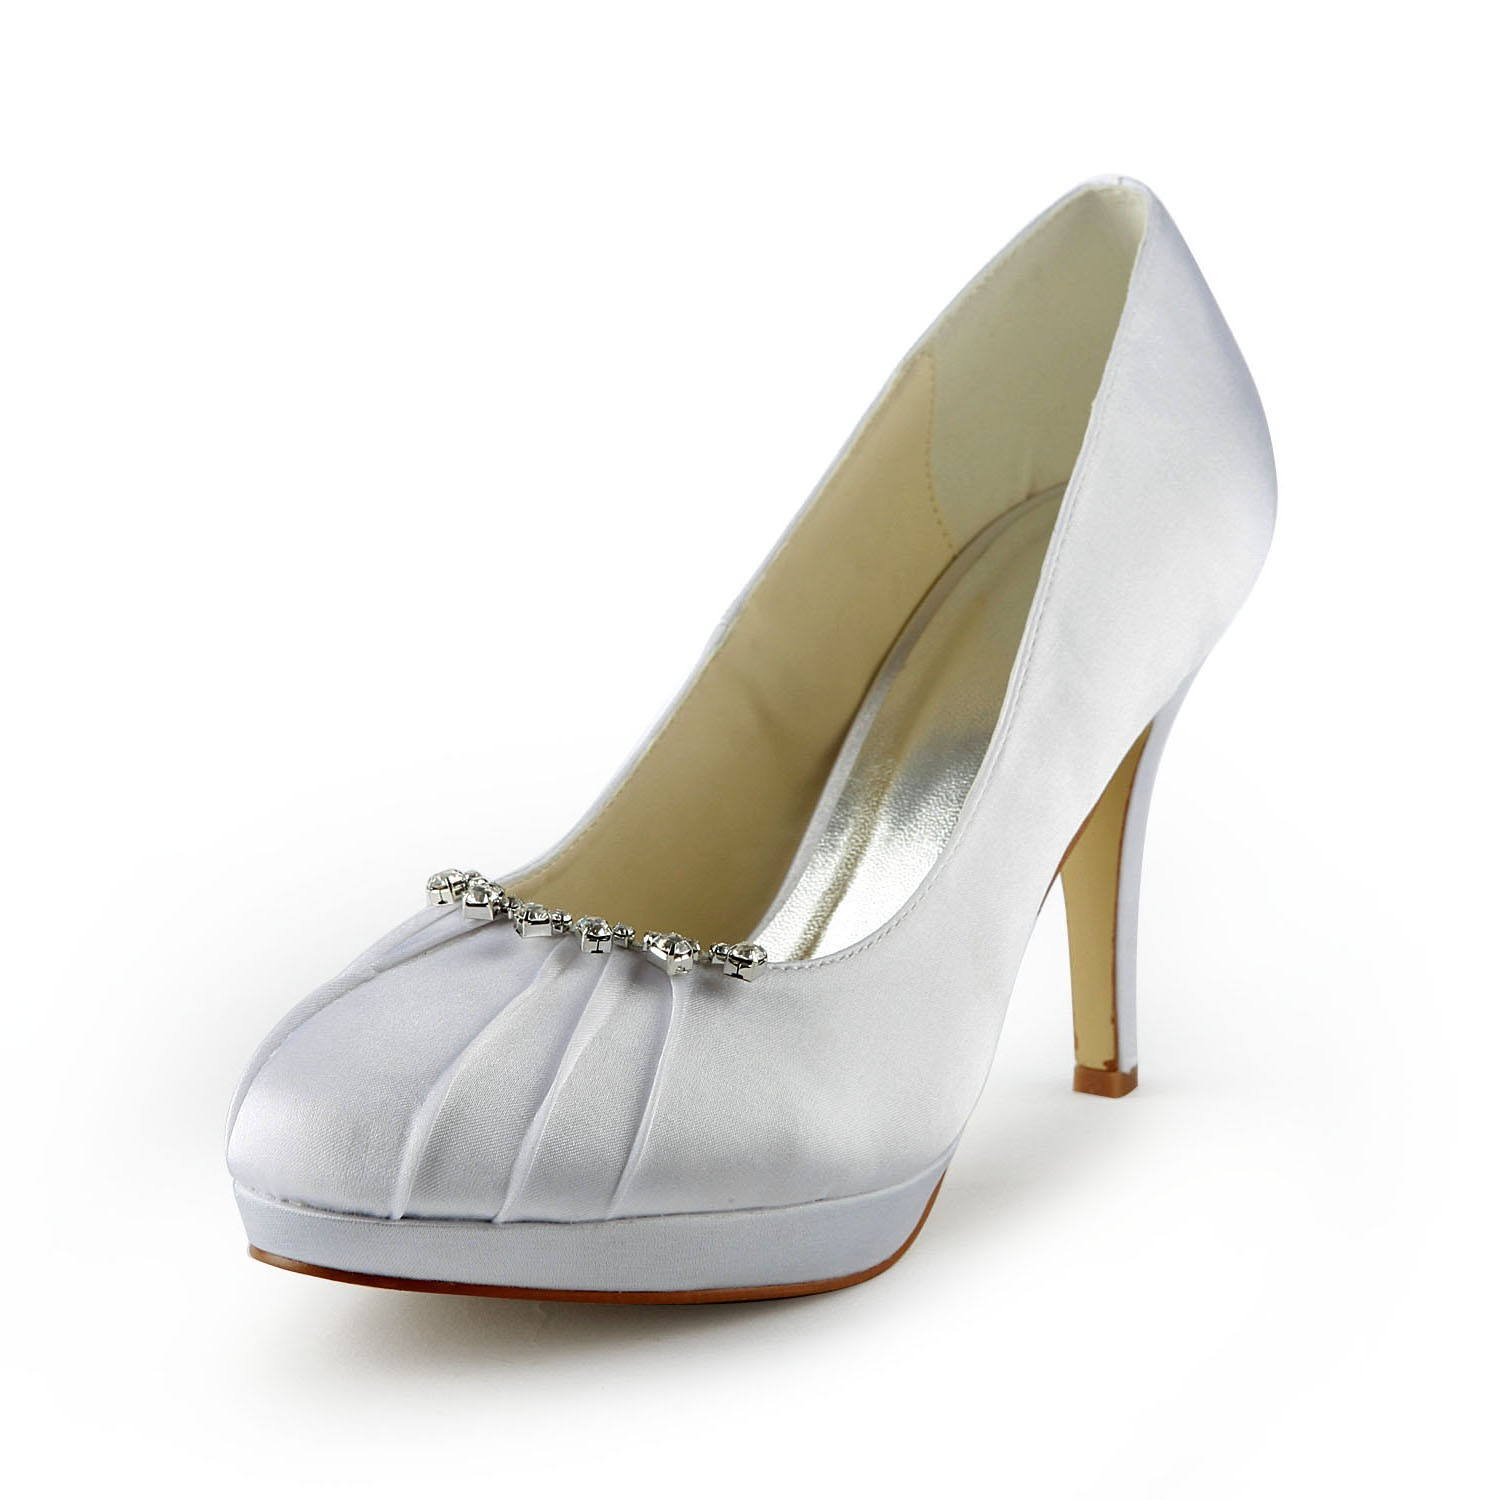 8c7b18ee6786c0 The Most Stylish Women s Satin Stiletto Heel Closed Toe Platform White  Wedding Shoes With Rhinestone